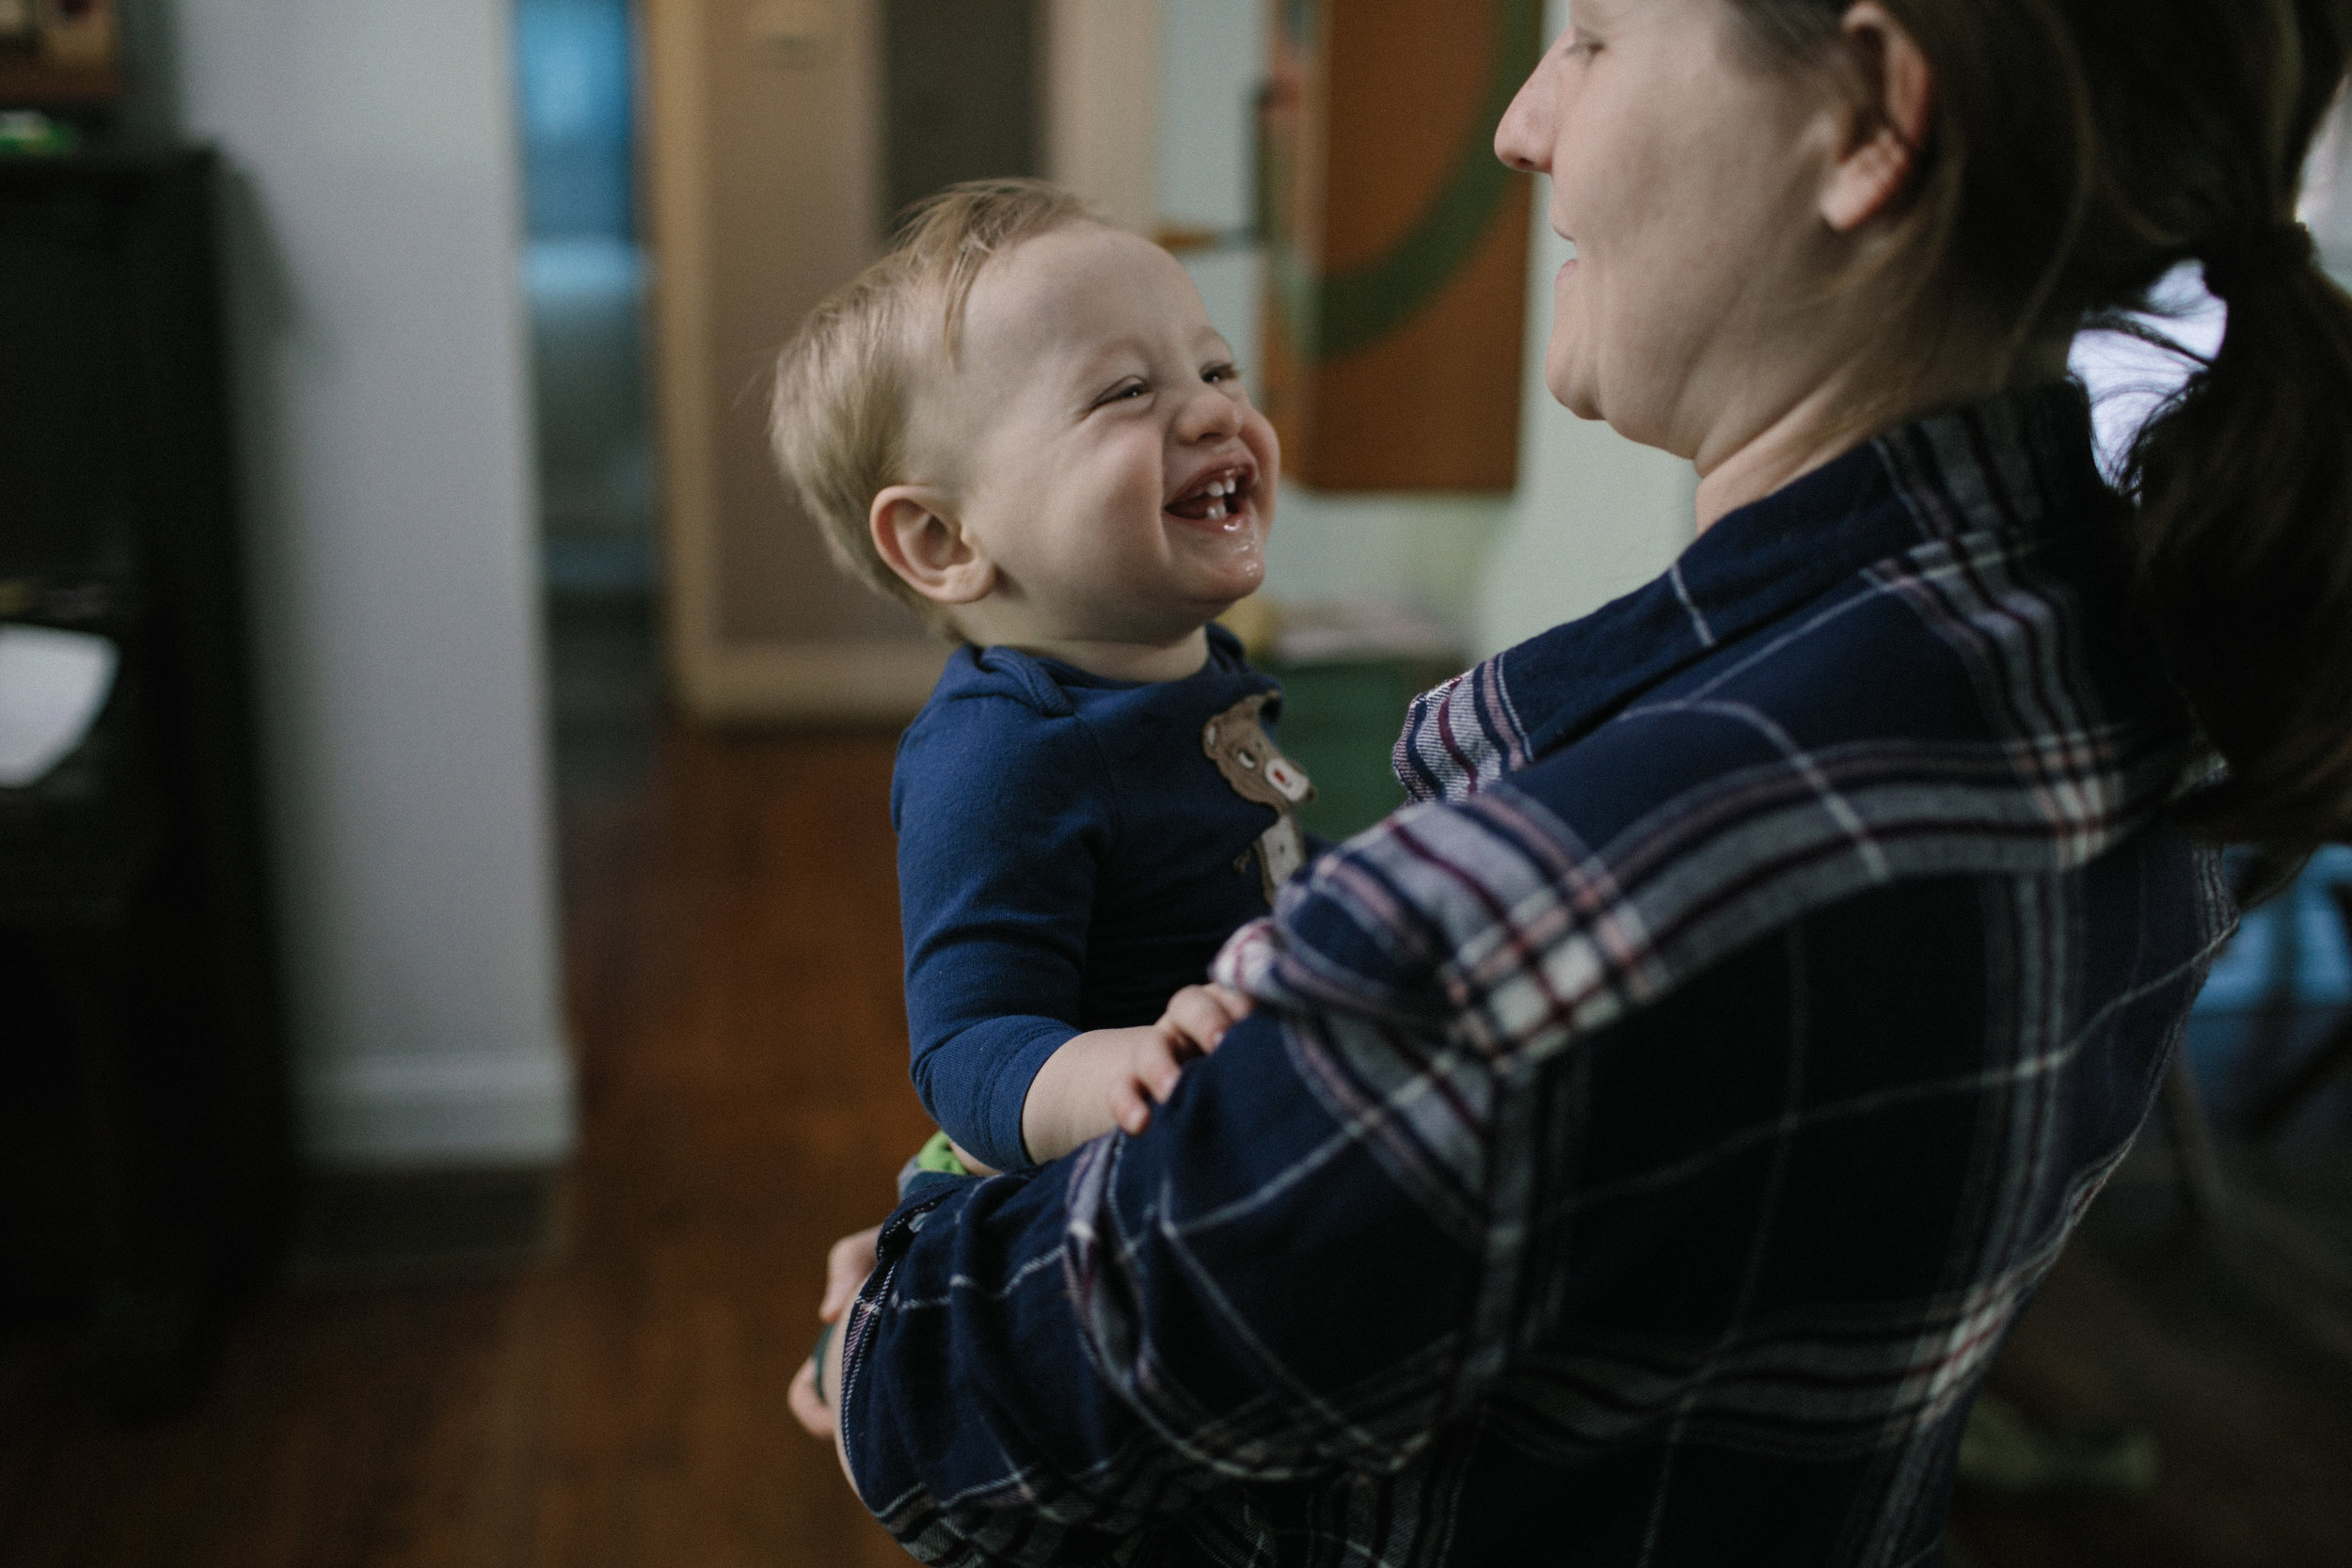 son smiles at mother who is holding him